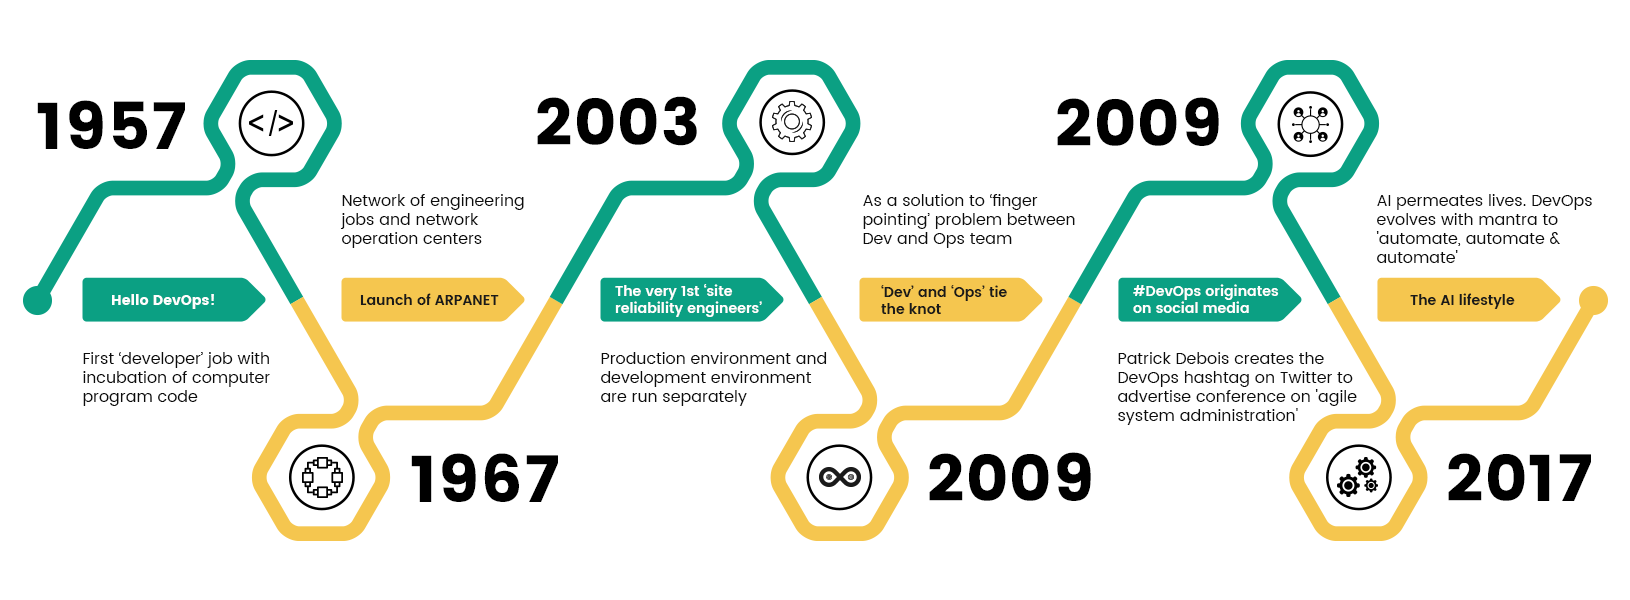 Evolution of DevOps